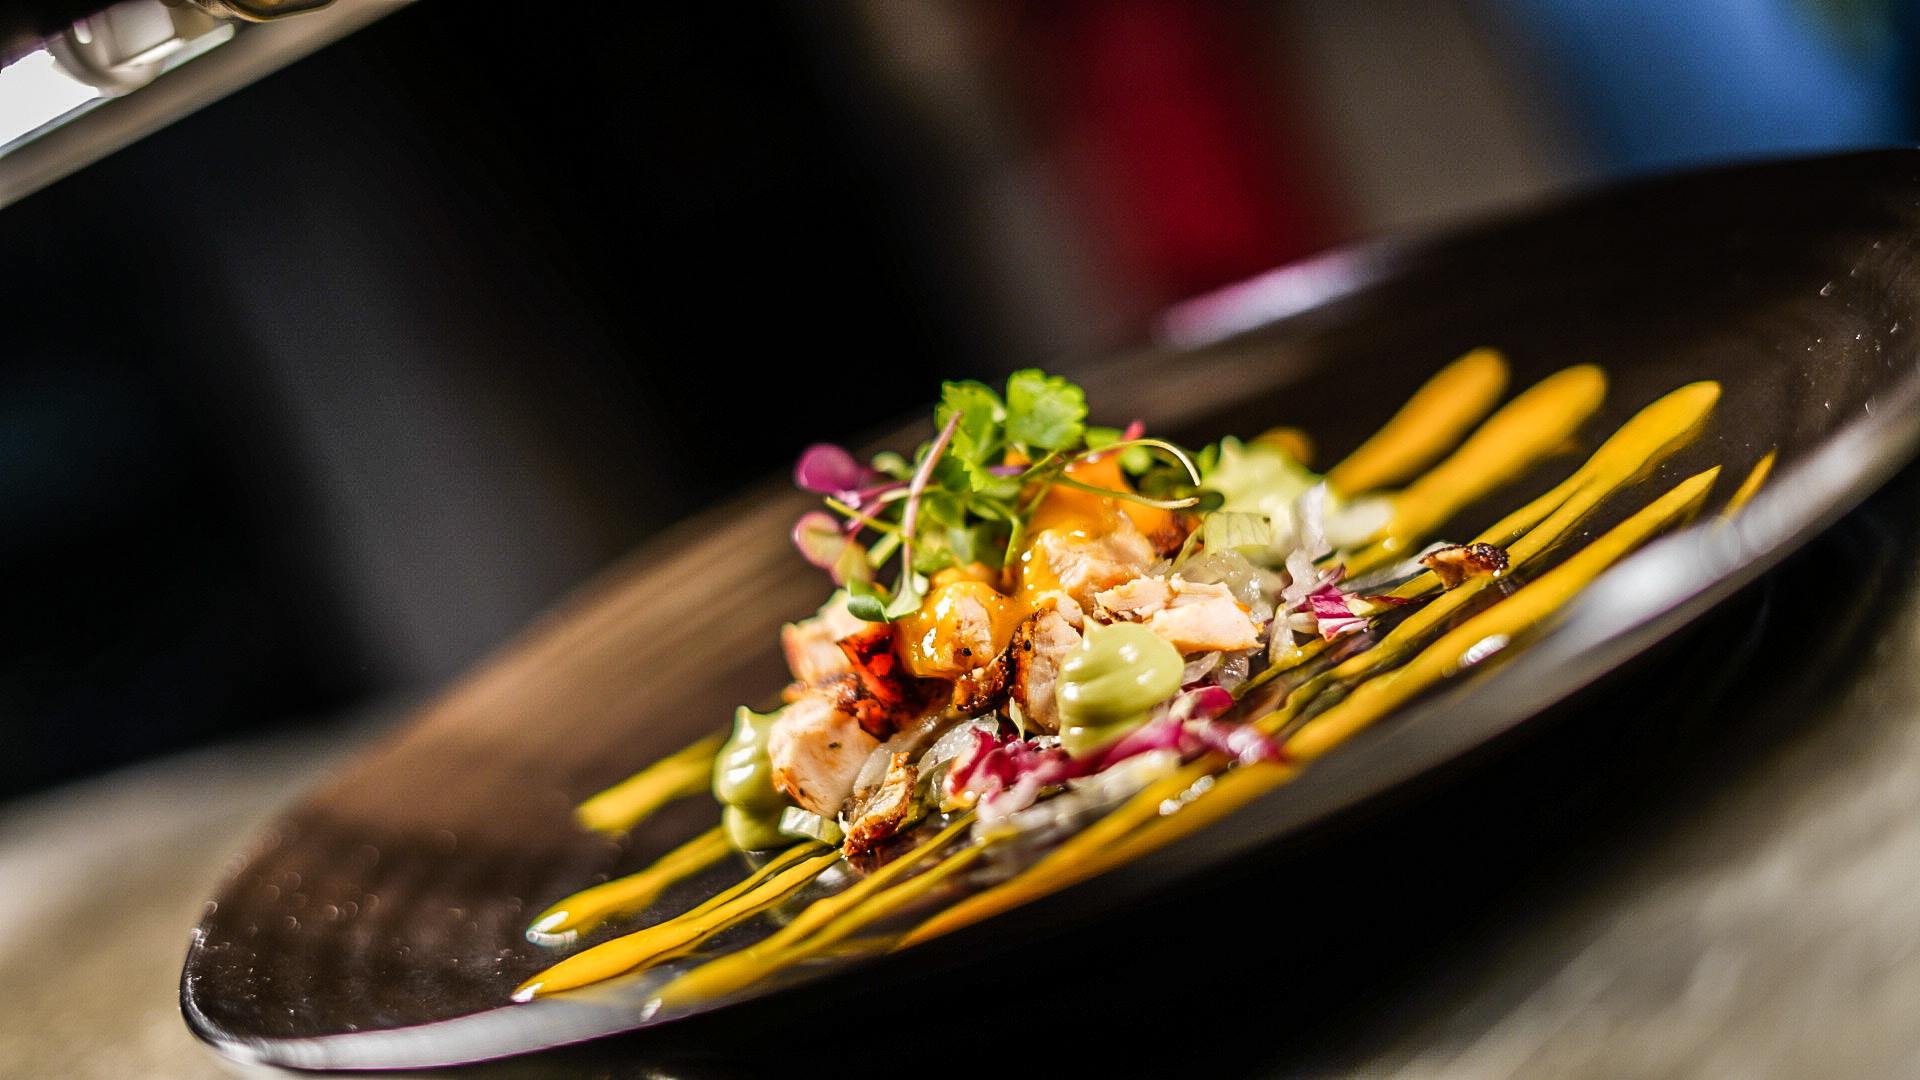 Grilled cornfed chicken with avocado purée, mix lettuce leaves and mango dressing